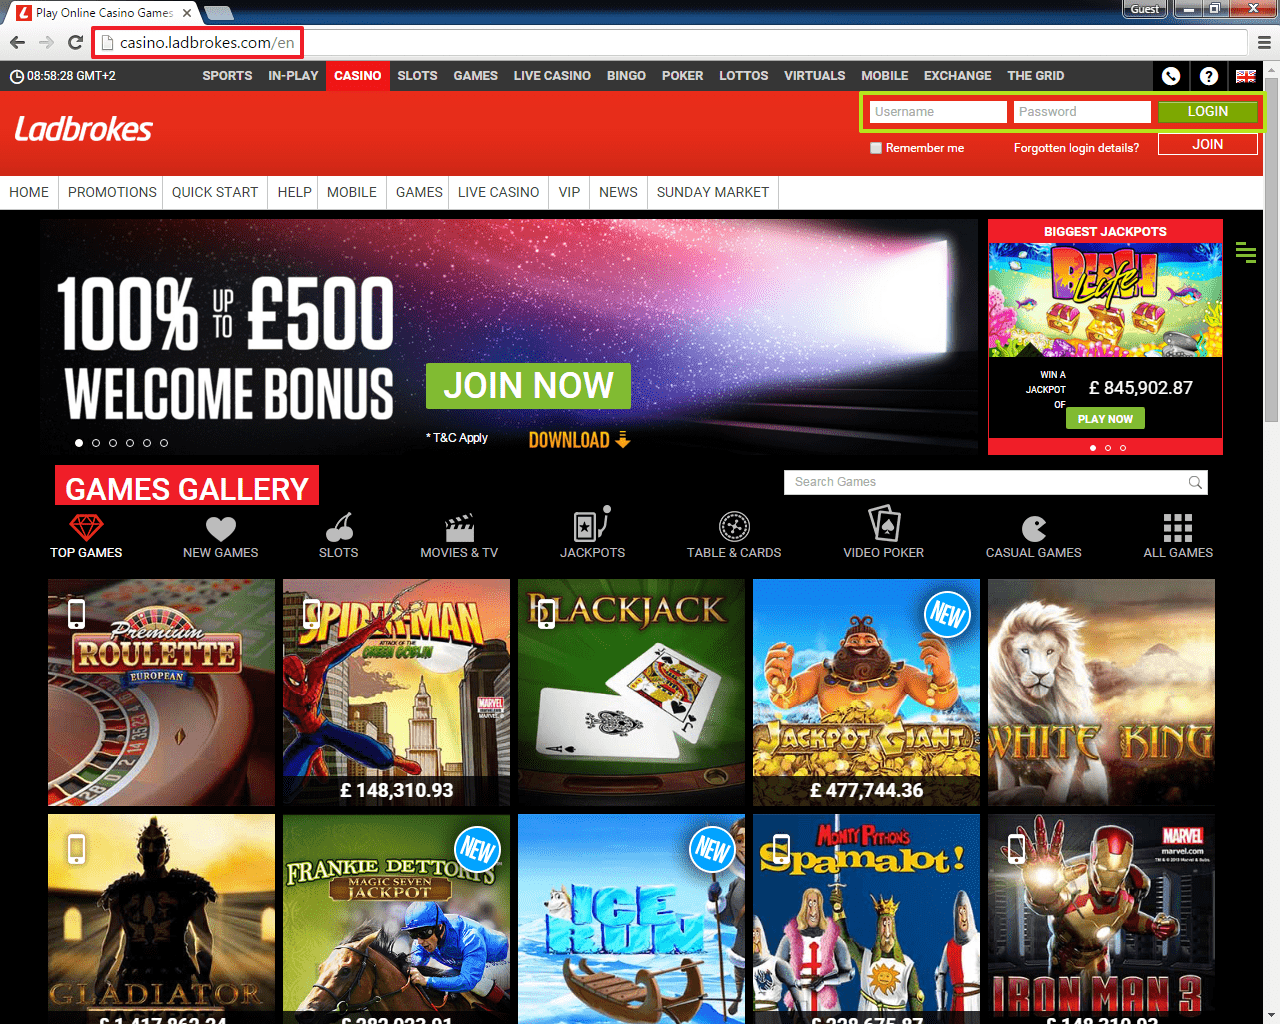 Lost Password Ladbrokes - 305545